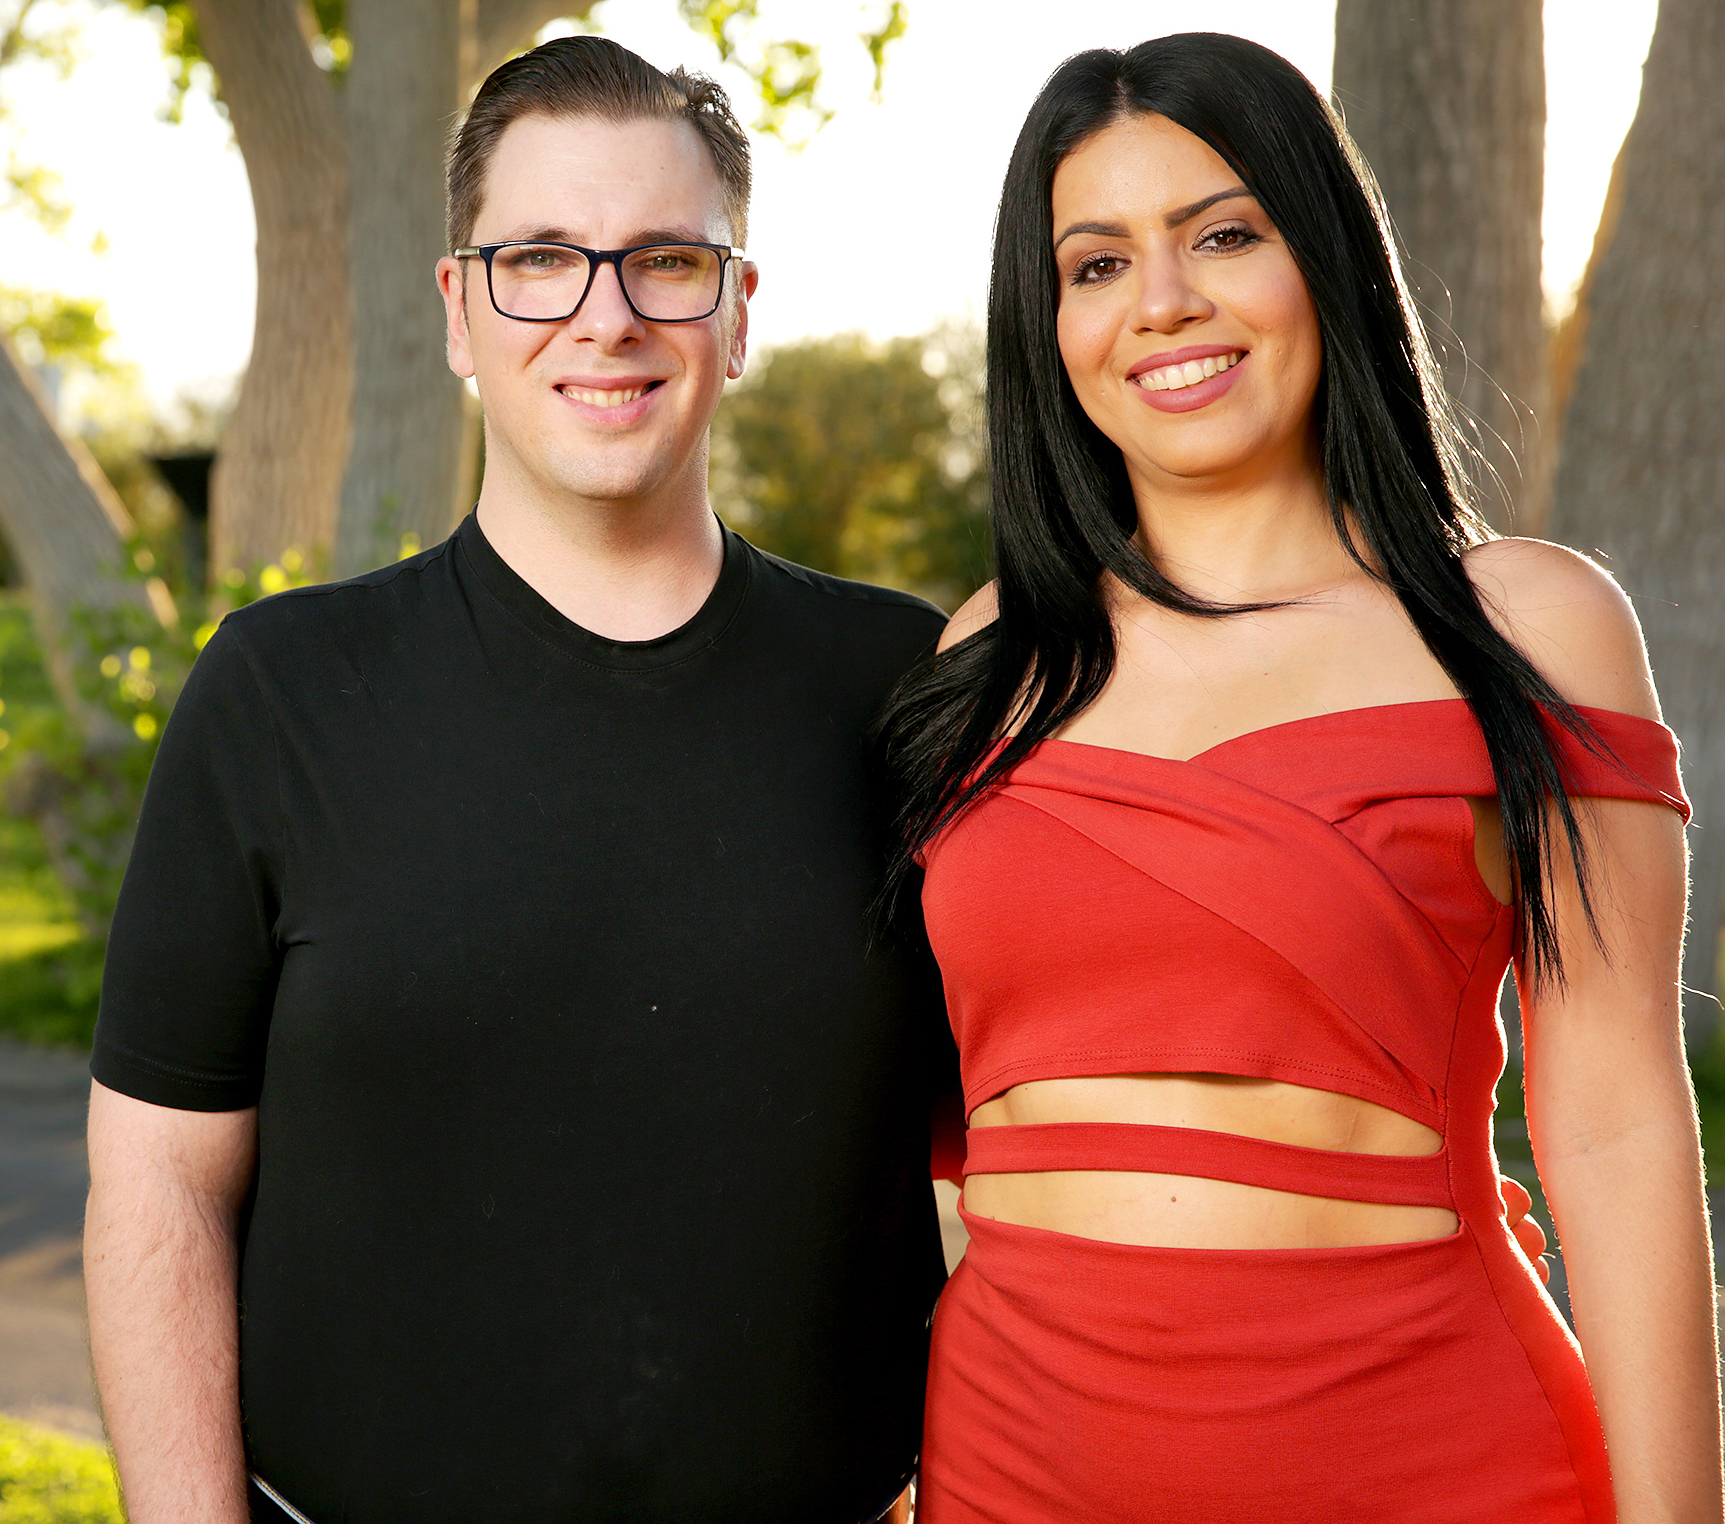 Colt-Johnson-Larissa-Dos-Santons-Lima - The 90 Day Fiancé stars first connected on social media and got engaged just five days after meeting in person. They tied the knot in June 2018, but Johnson filed for divorce in January 2019 after Dos Santos Lima was arrested for domestic battery against him for the third time.